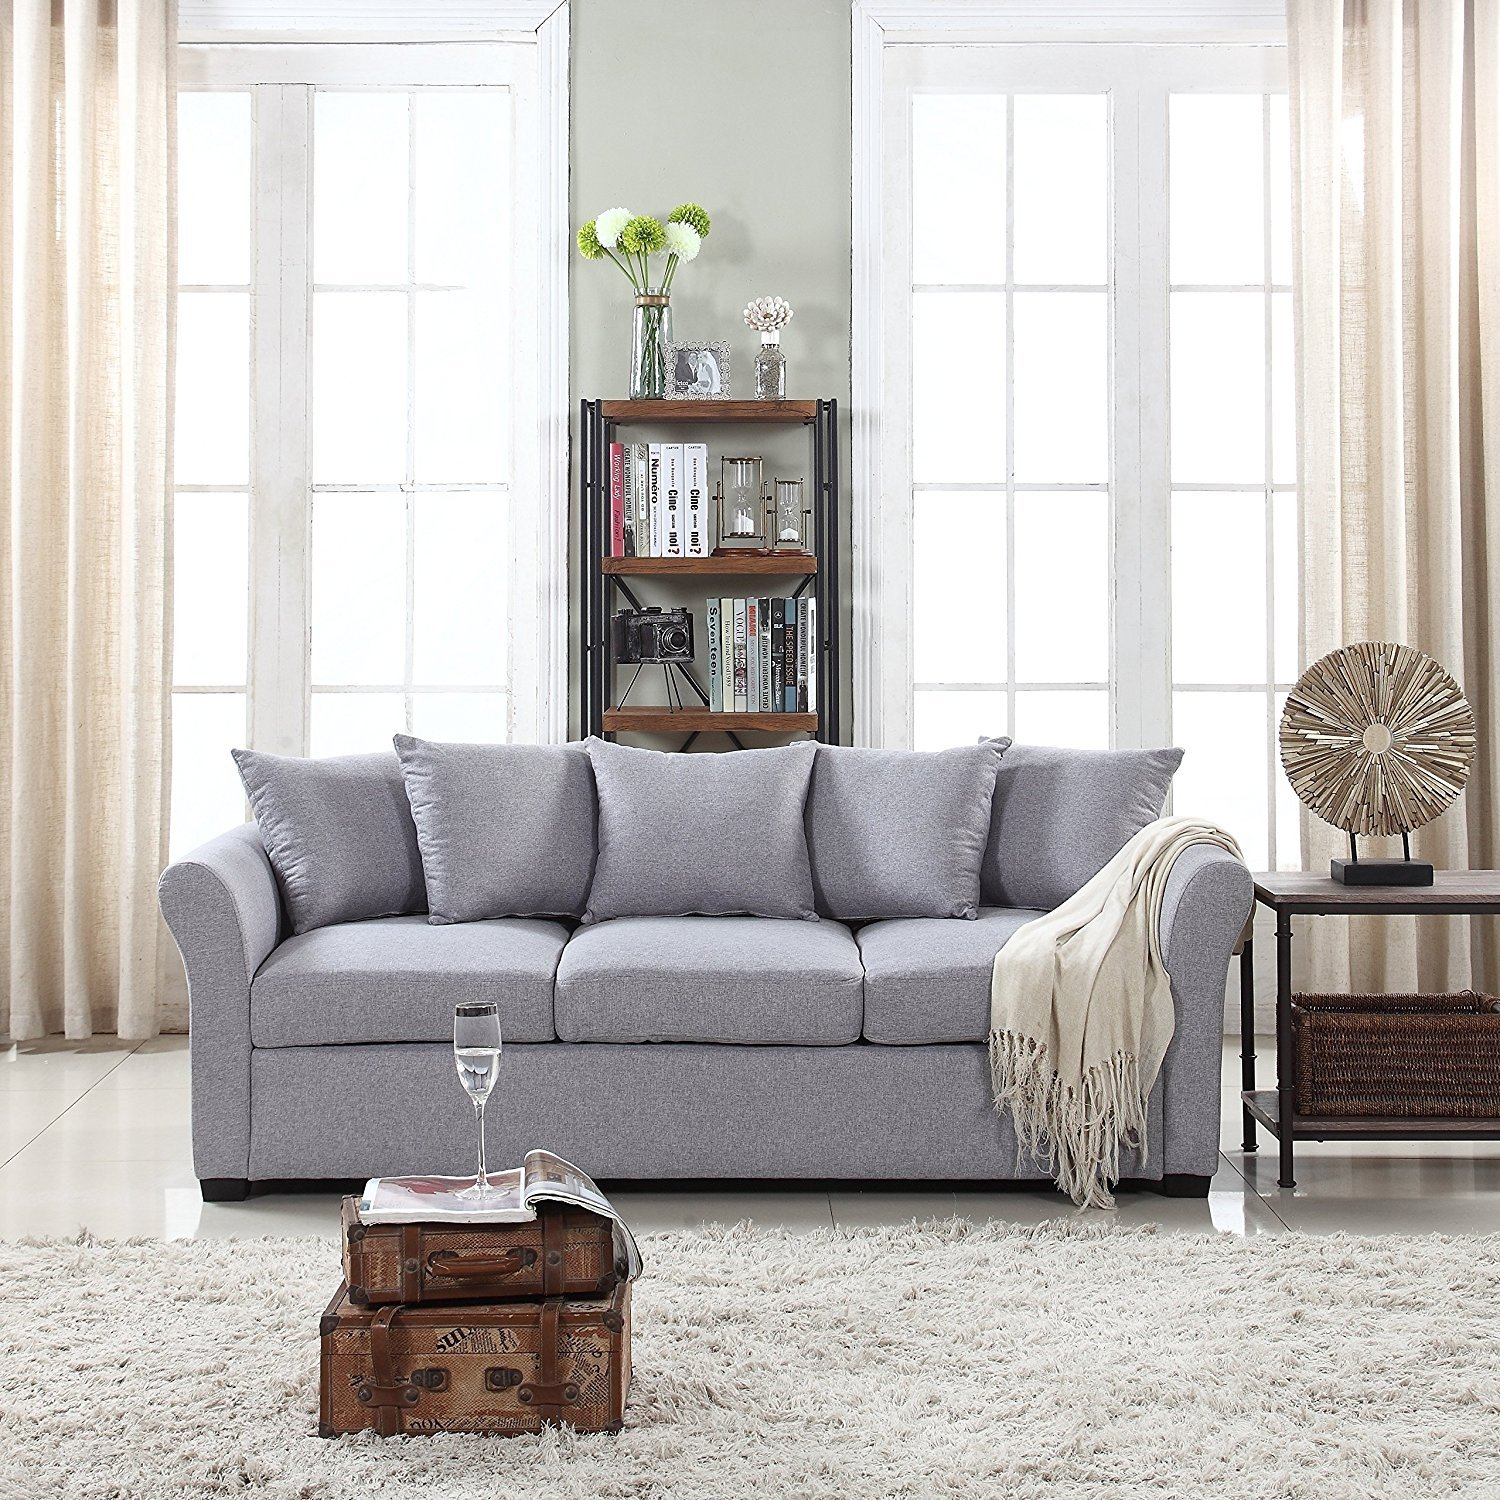 Details about Modern Grey Couch Comfortable Linen Fabric Sofa - Living Room  3 Seater Design